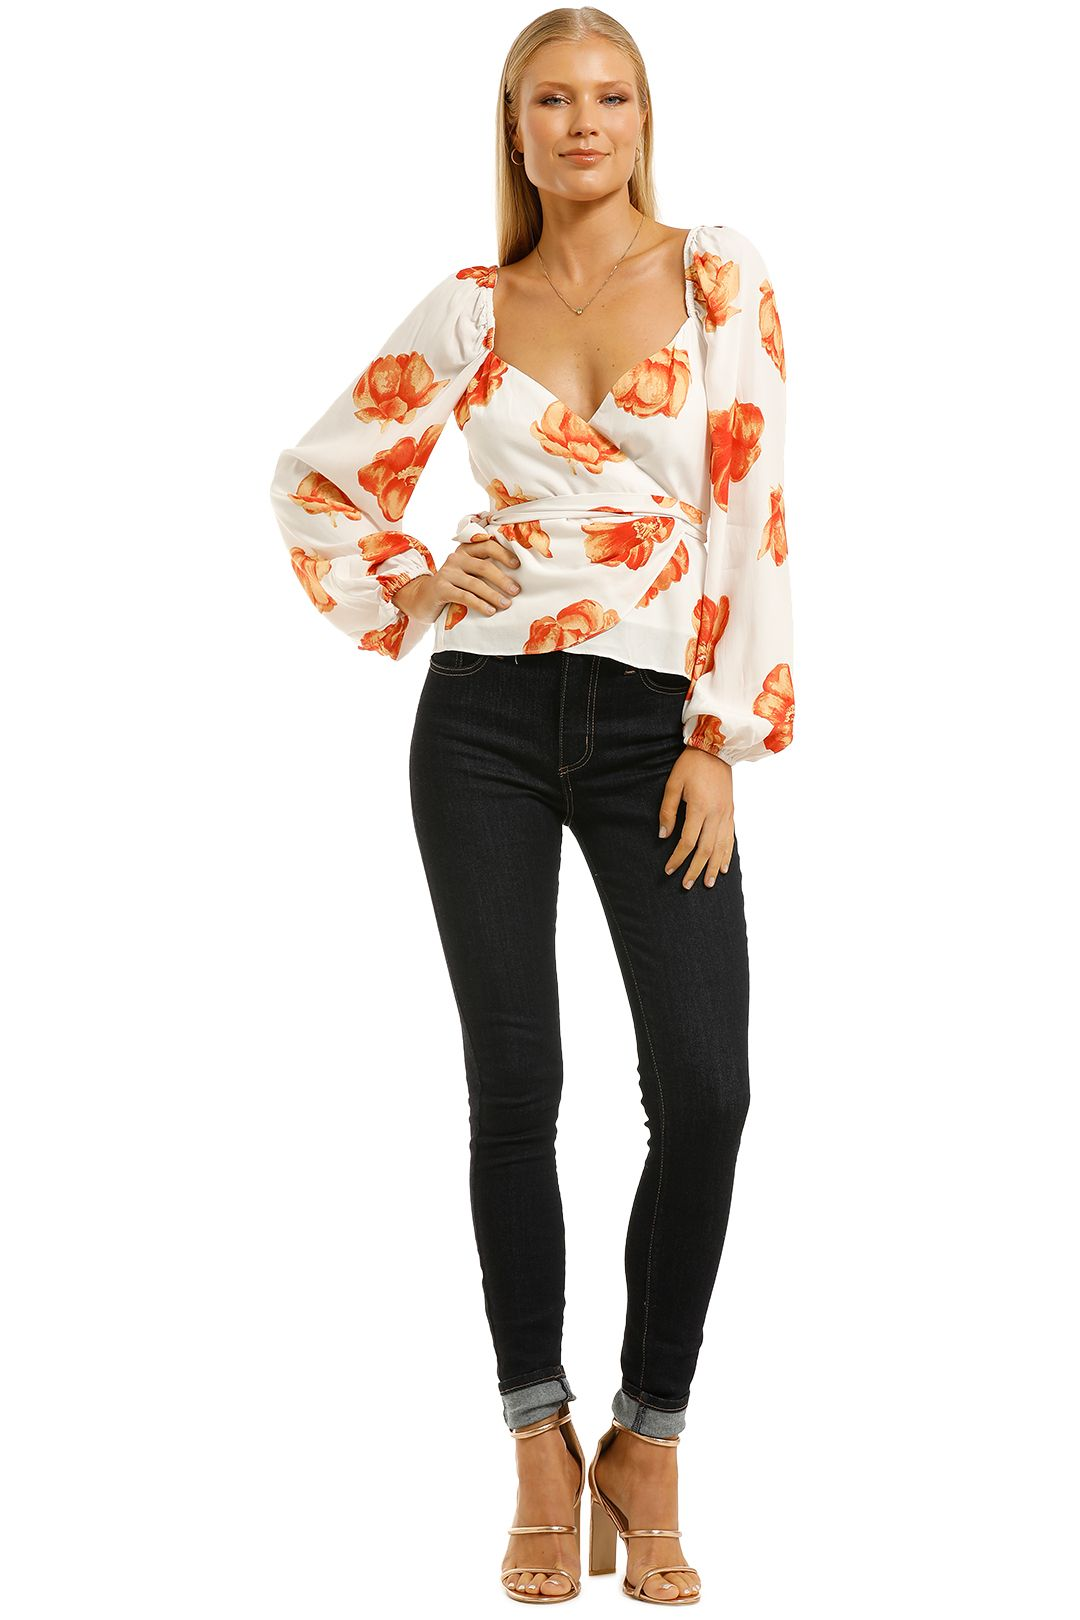 The-East-Order-Frenchie-Top-Fallen-Flowers-Front